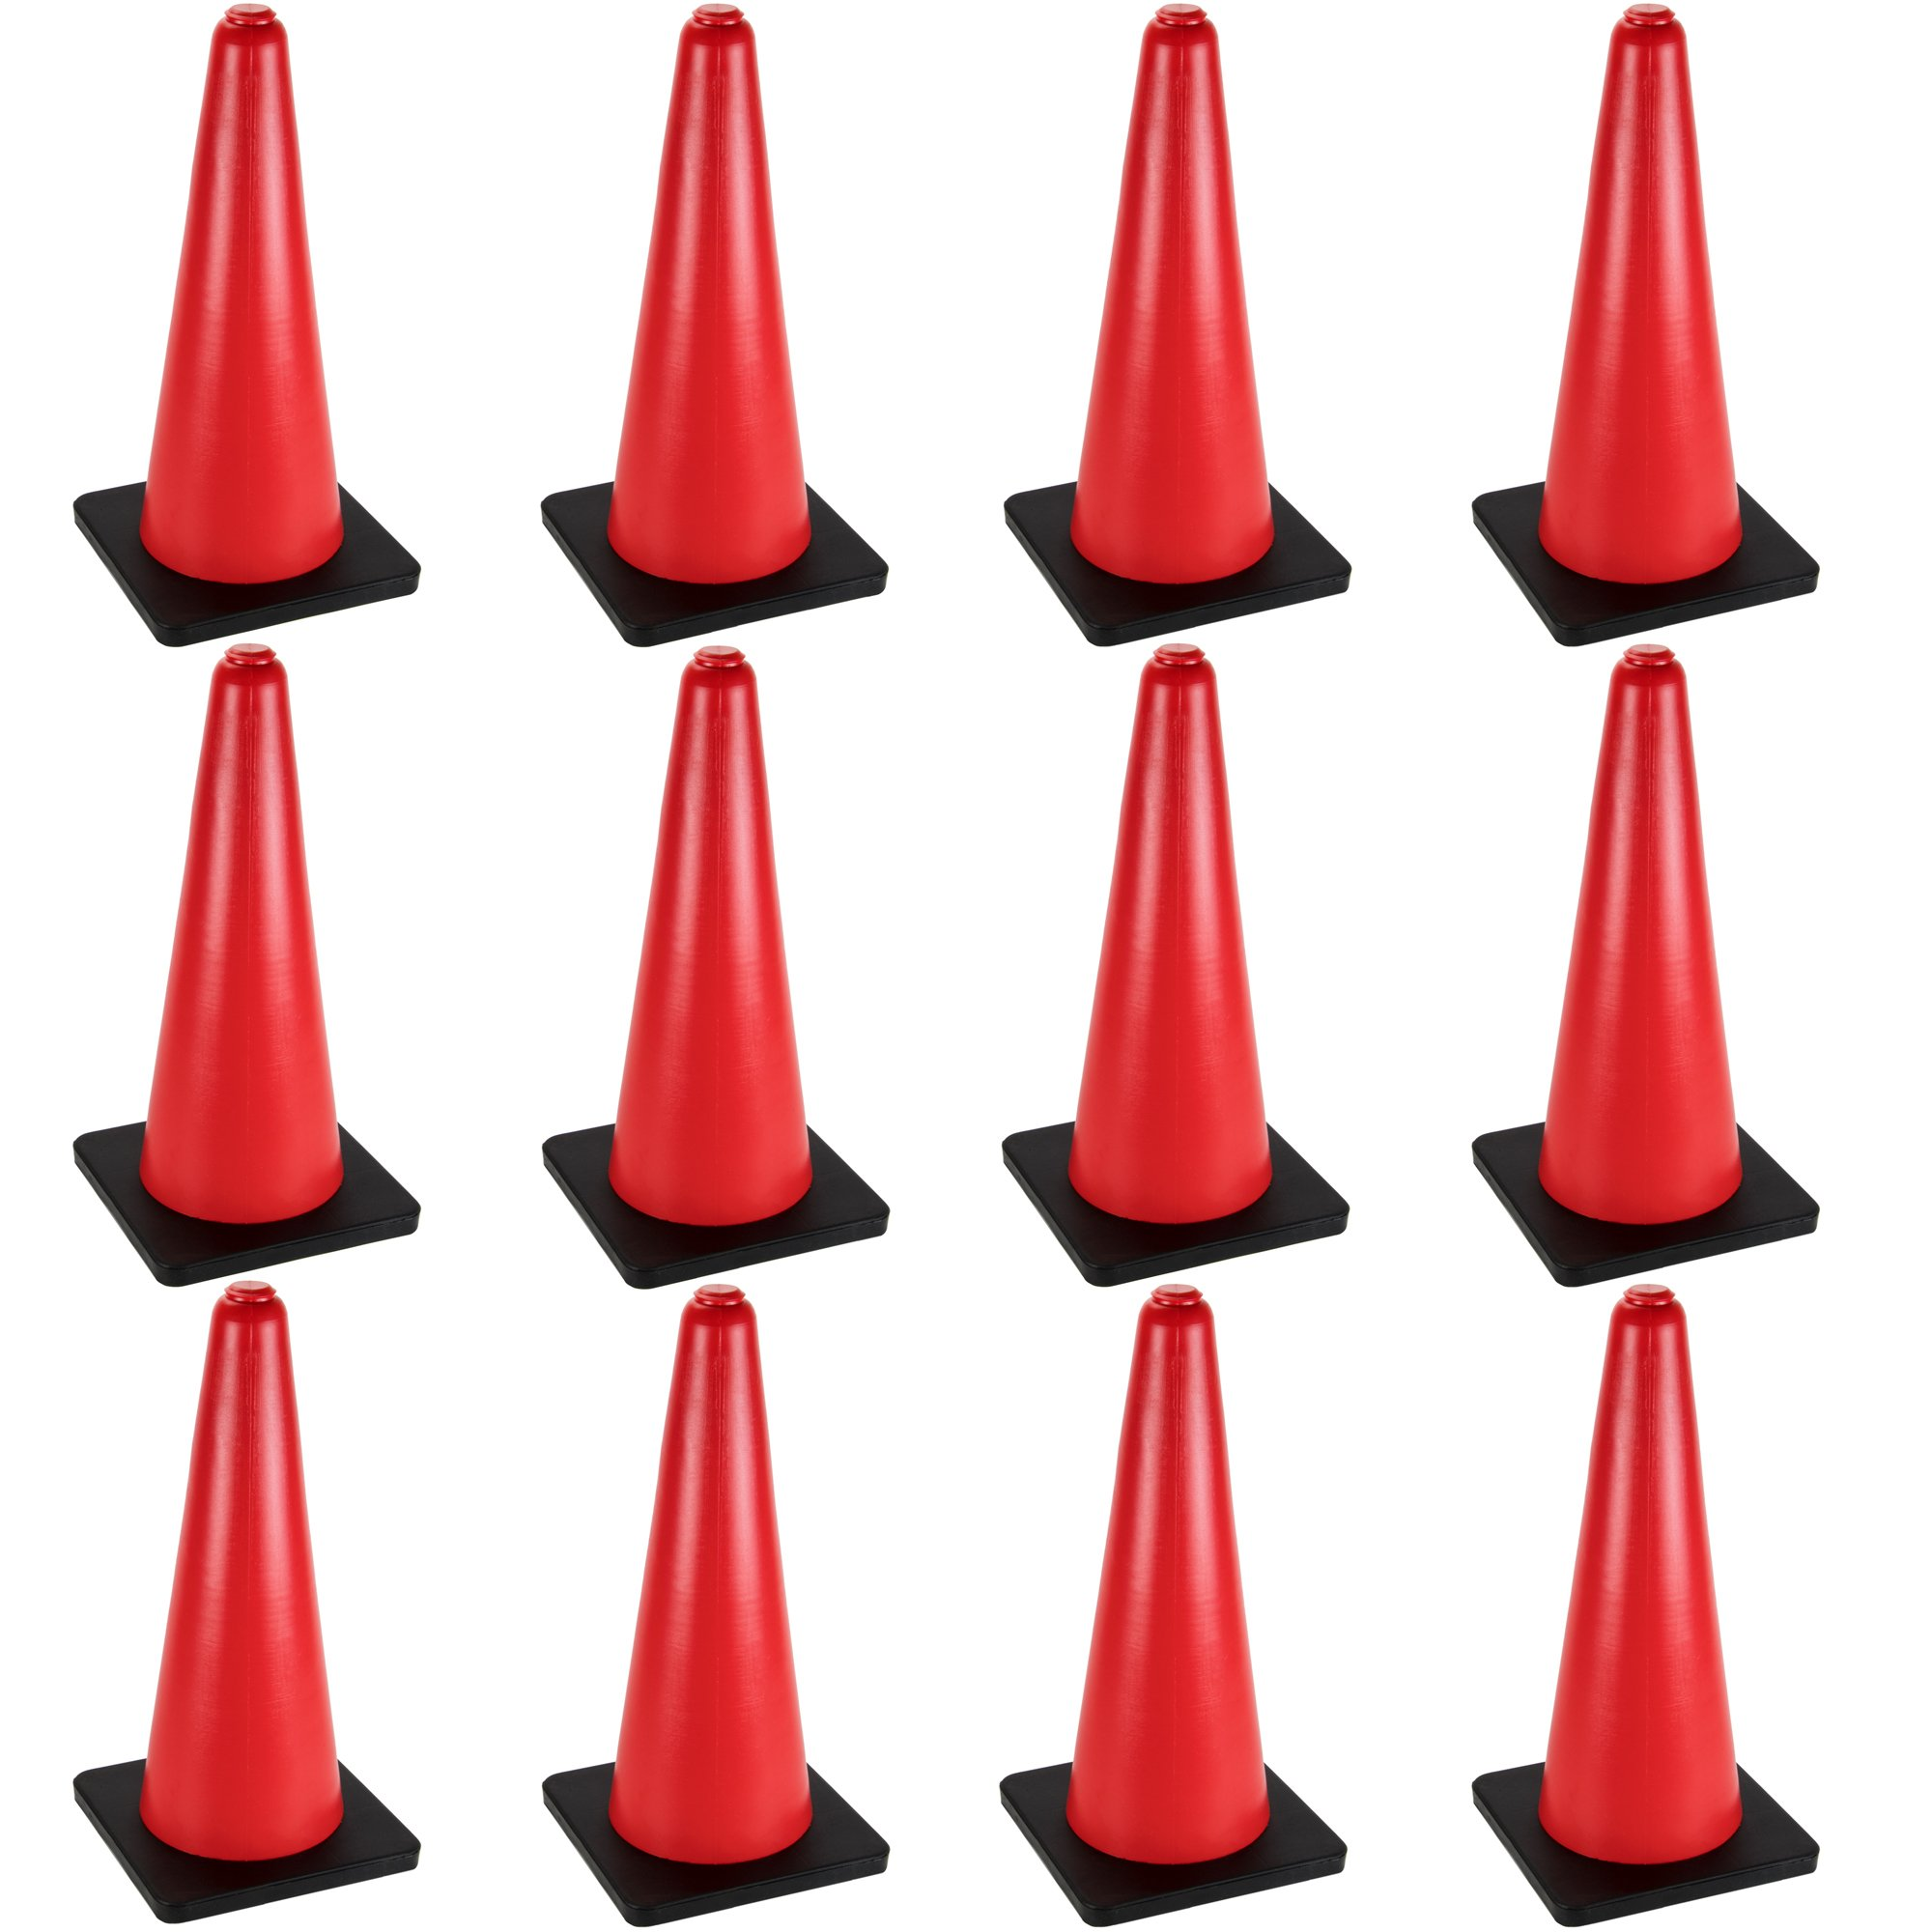 24'' High Hat Cones in Fluorescent Orange with Black Base for Indoor/Outdoor Traffic Work Area Safety Marker & Agility Sport Training by Bolthead Industrial (12-Pack)